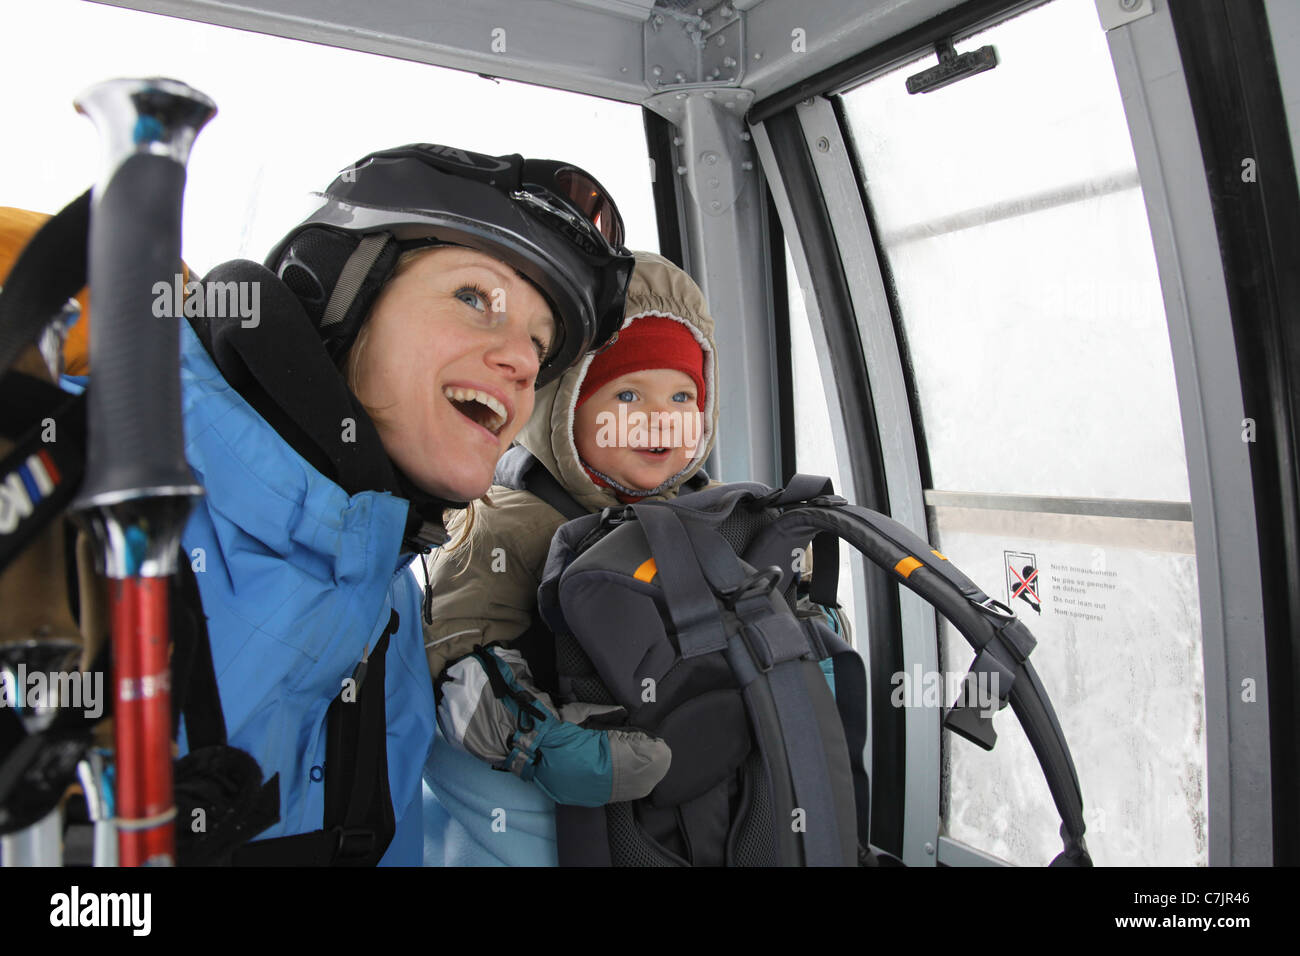 Mother and child riding ski lift - Stock Image